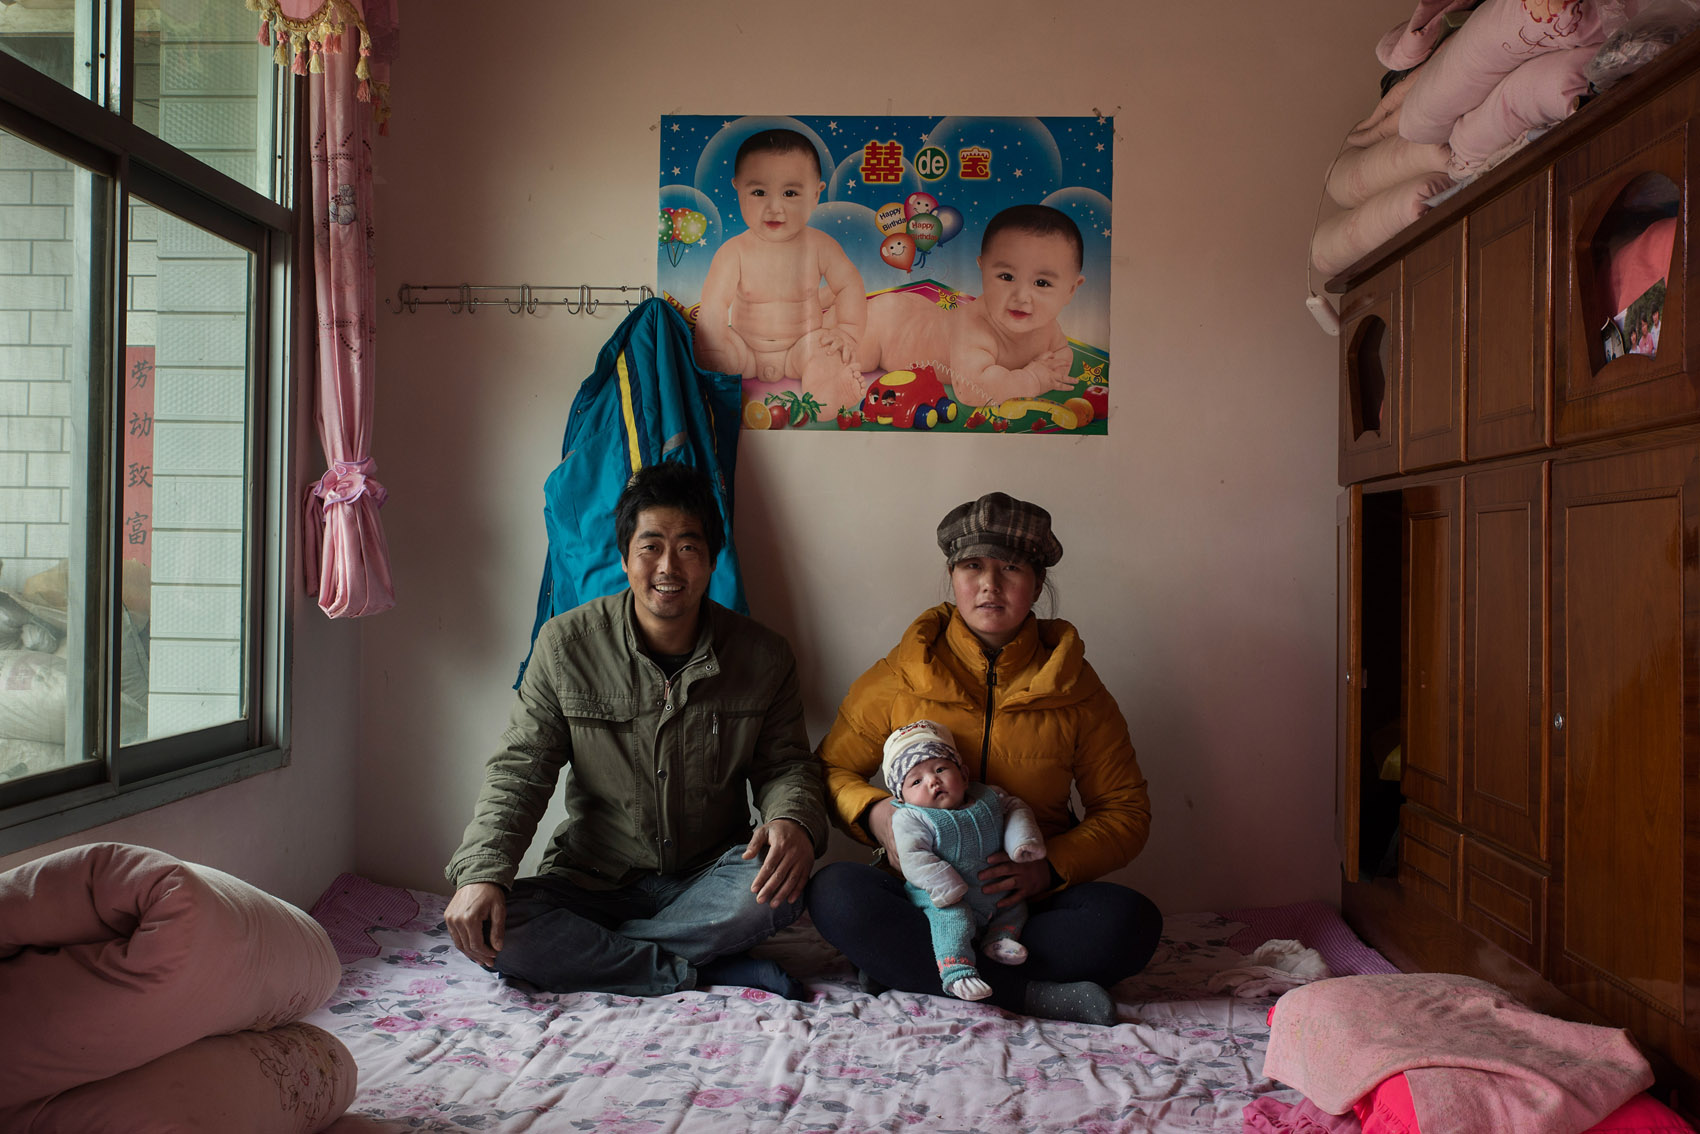 Anjiawan village  Peng Yongjie, 38 yo, with his wife 30 years old Di Jinfang and their 40 days old daughter.  Peng And Di have been trying to have a baby since they got married 8 years ago. They have soughthelp from local private clinics with no success and at mounting costs. Eventuallythey went toa hospital in the provincial capital Xian, where they were quoted20,000RMB (US$ 3,200)for anartificial insemination. At the time Peng and Di only had 3,000 RMBin savings. For four years Peng and Di saved money to eventually be able to pay for the operation last year. The first attempt was successful. They now want to have another baby, a boy. The poster on the wall was put up 7 years ago.  Peng is a construction worker and makes about 100 CNY (16US$) a day. The picture was taken the day before Peng's departure for work after the Chinese New Year break.